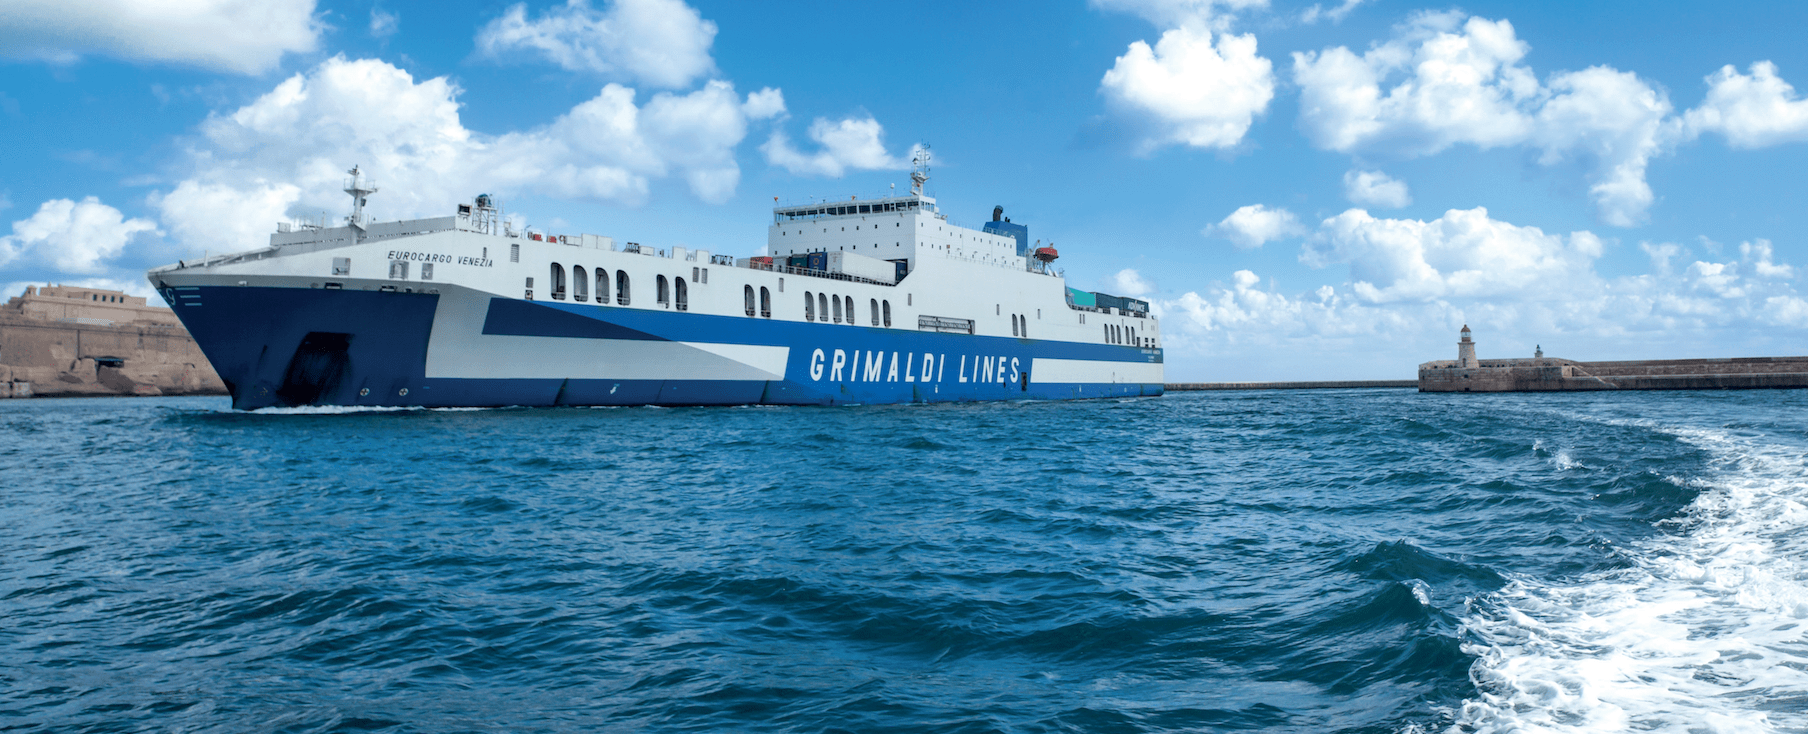 Grimaldi Group – Frequent, Punctual & Fast Innovative Transport